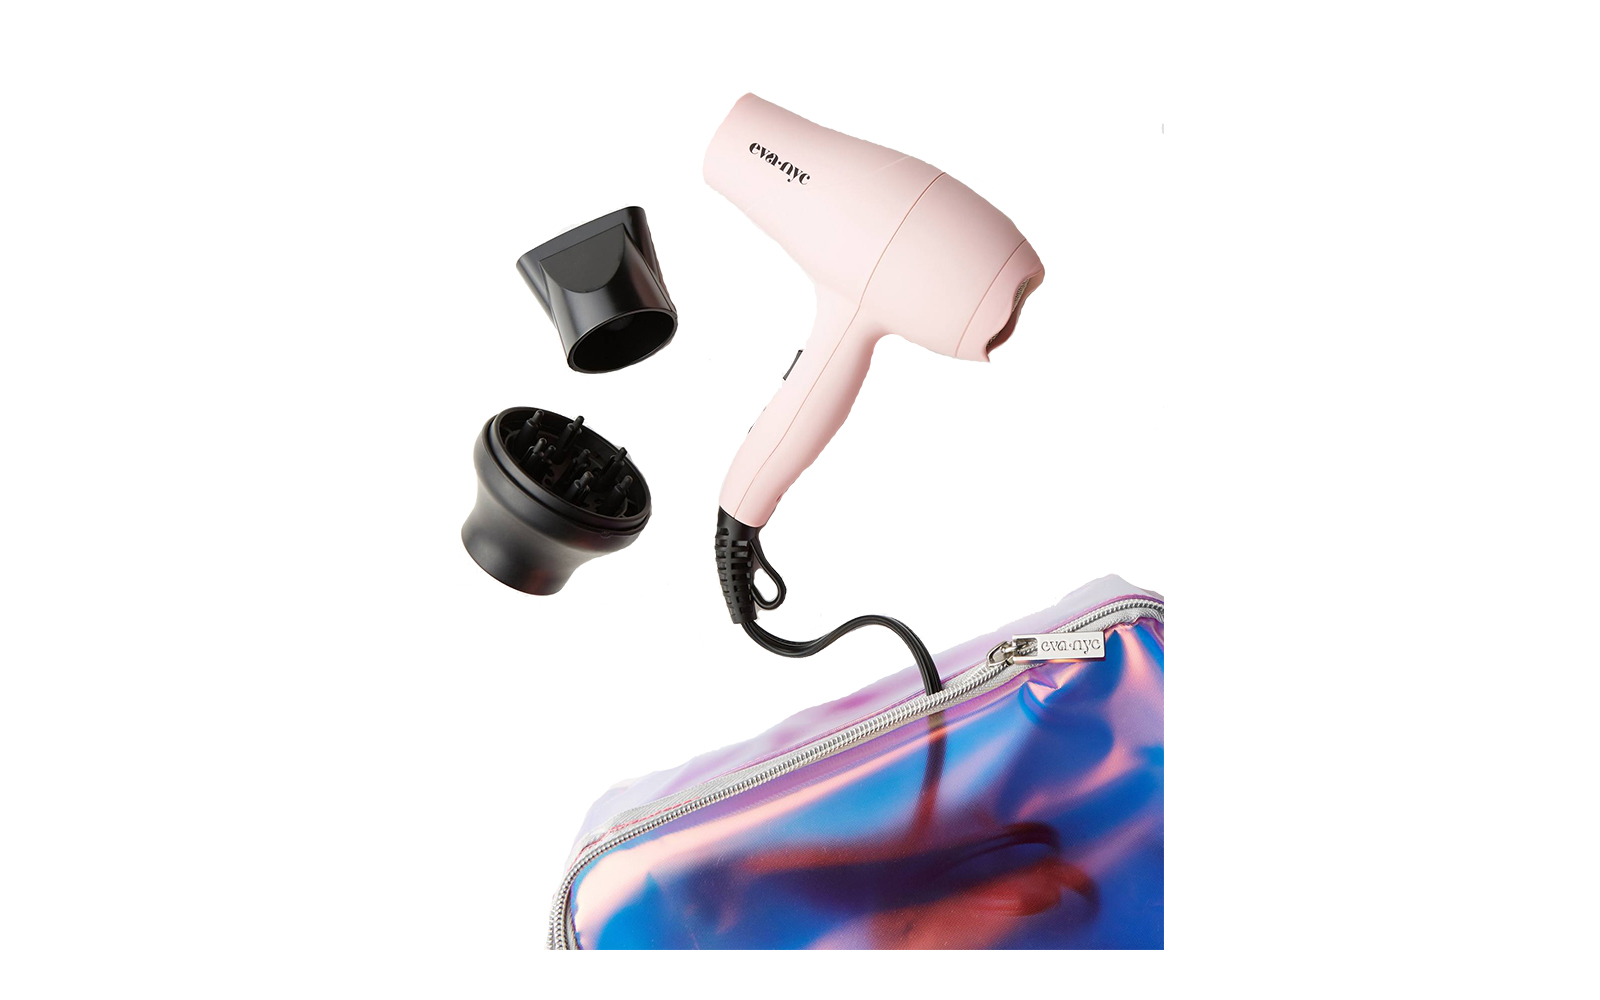 Best Travel Hair Dryer With Extras: Eva NYC Mini Healthy Heat Hair Dryer